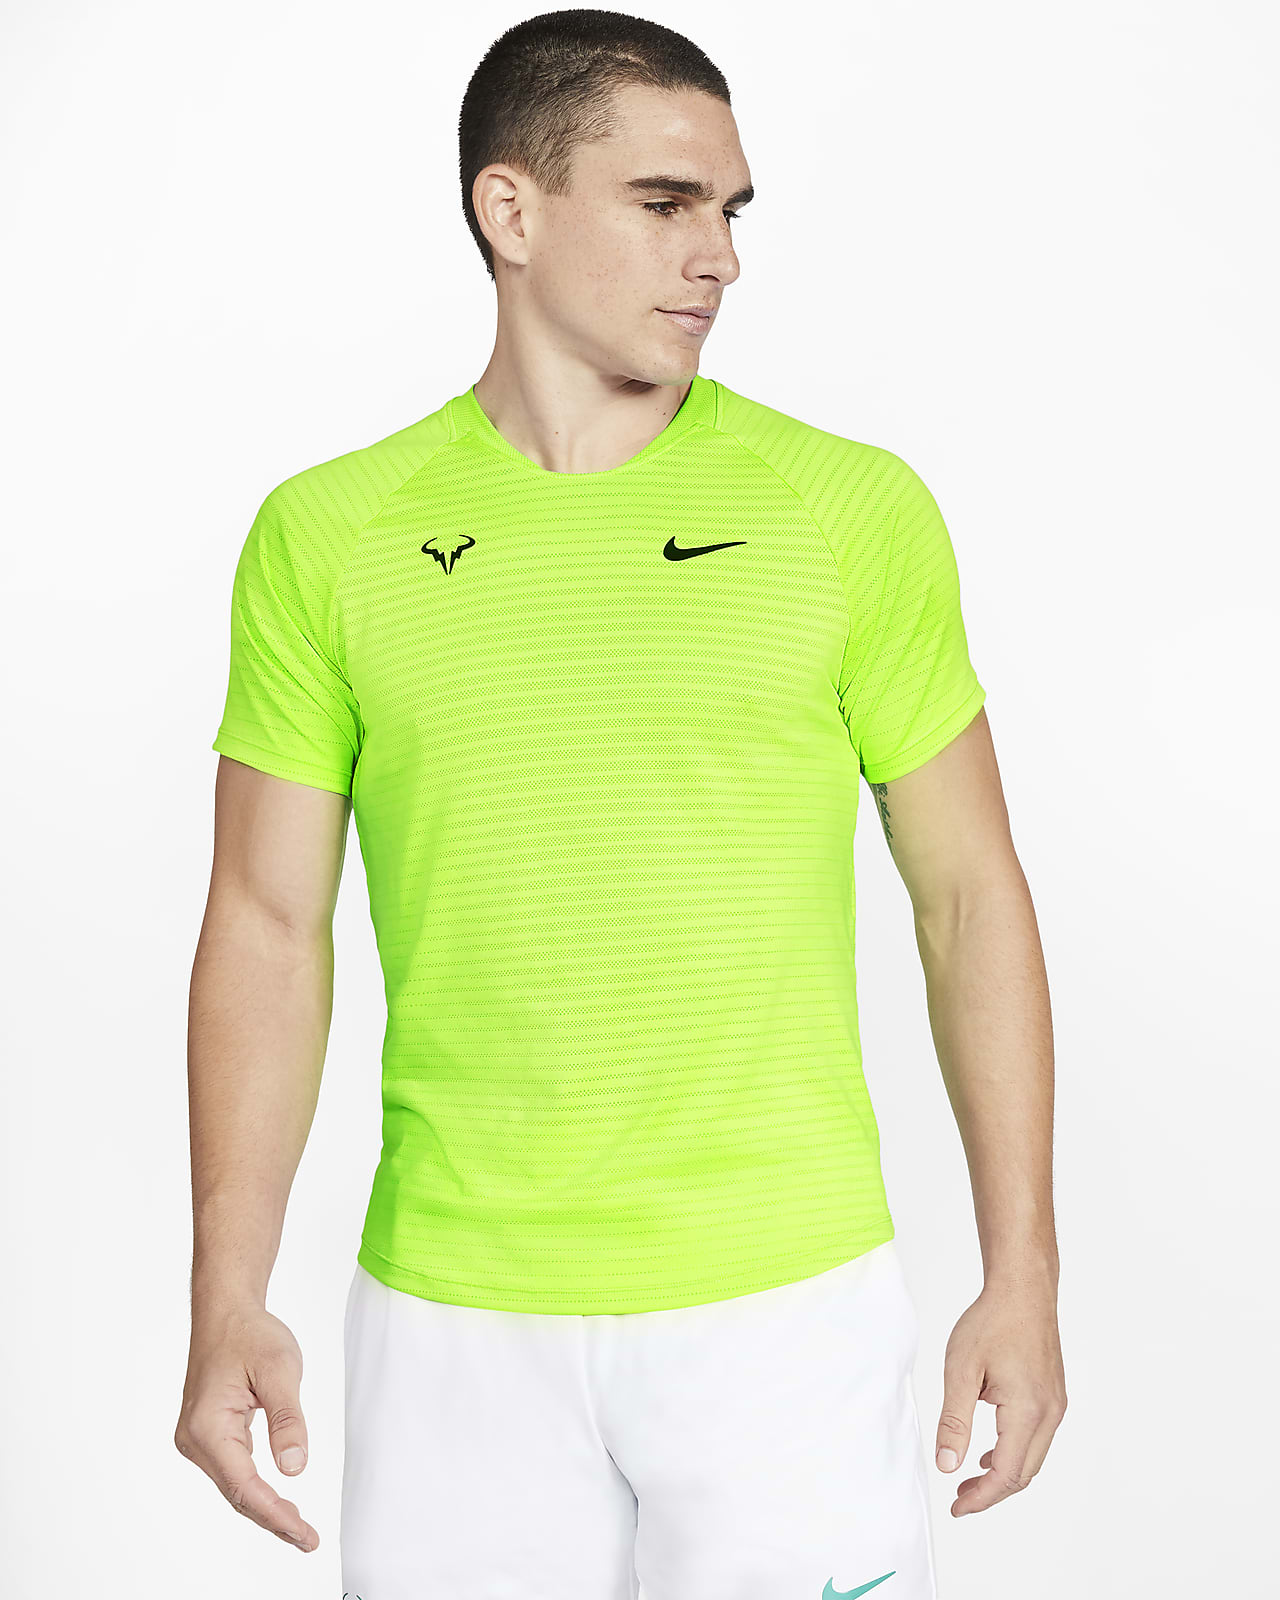 NikeCourt AeroReact Rafa Slam Men's Short-Sleeve Tennis Top